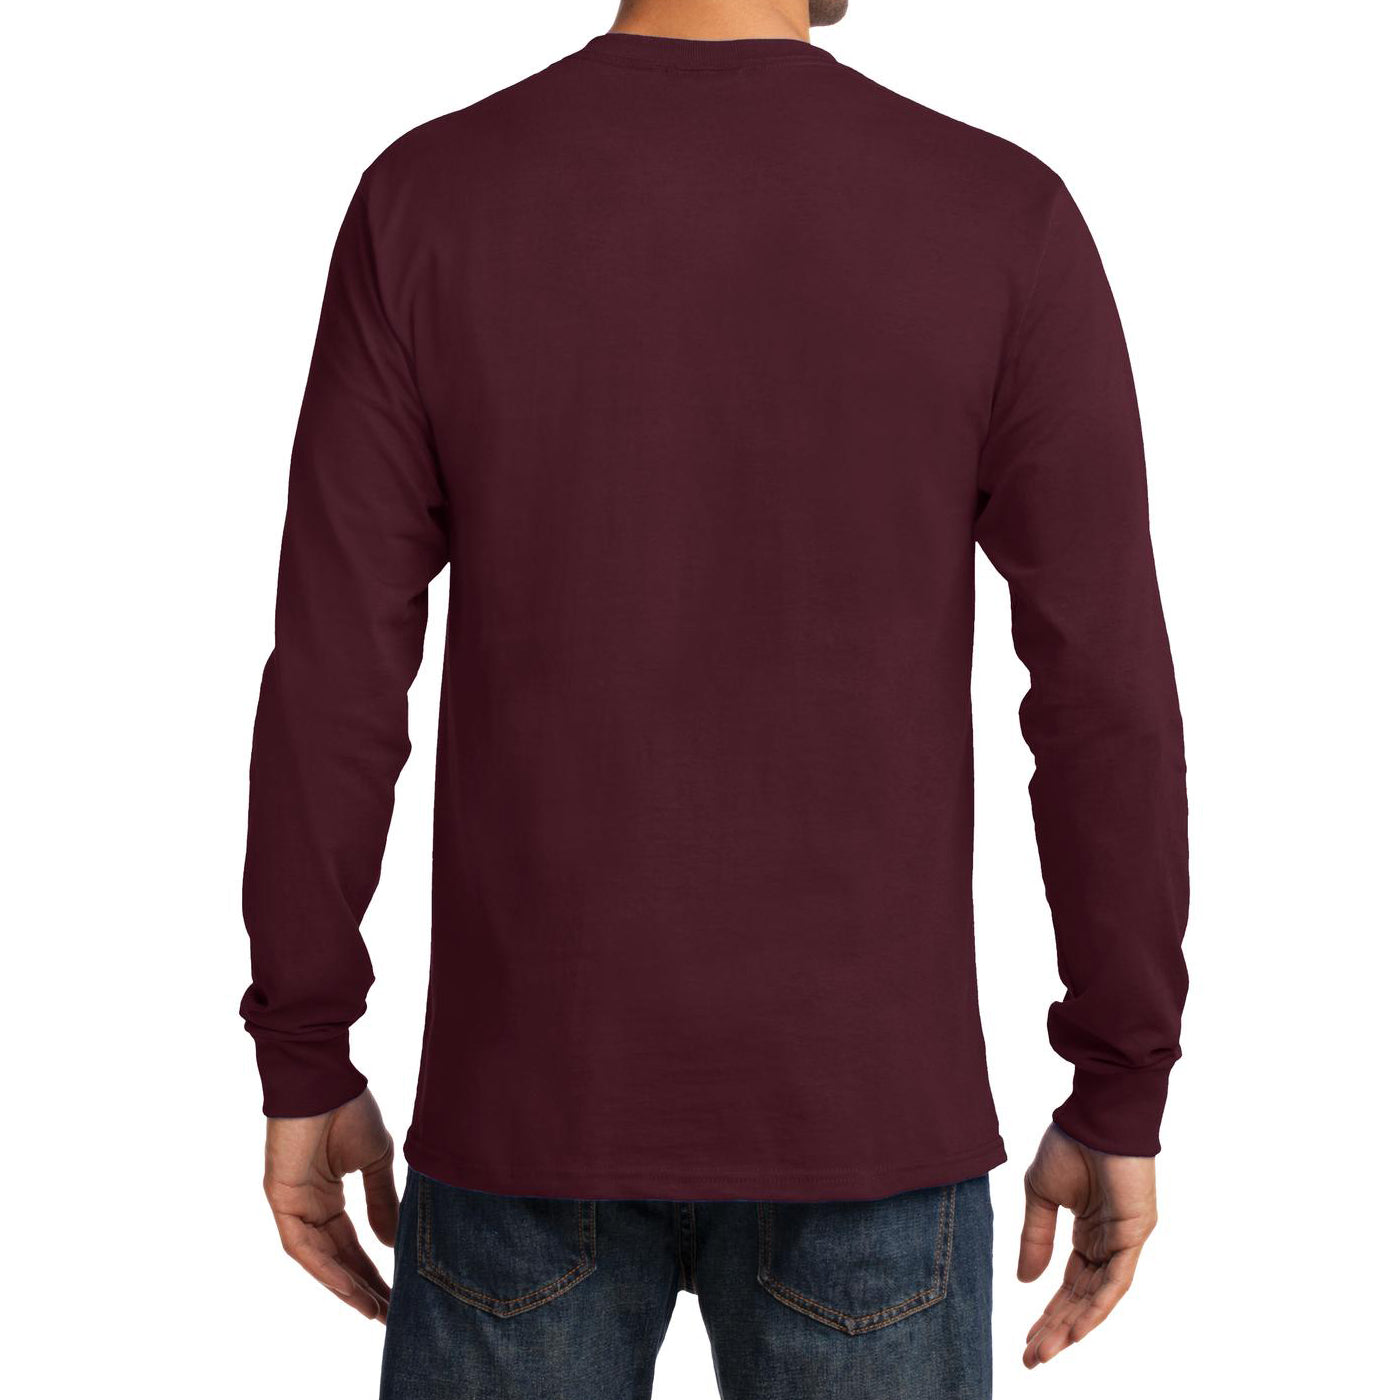 Men's Long Sleeve Essential Tee - Athletic Maroon - Back